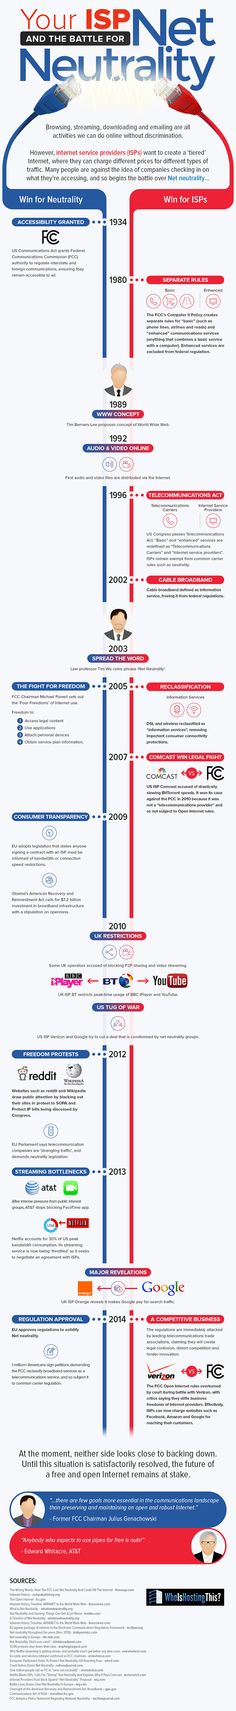 A Brief, Unfolding History of Net Neutrality (Infographic)